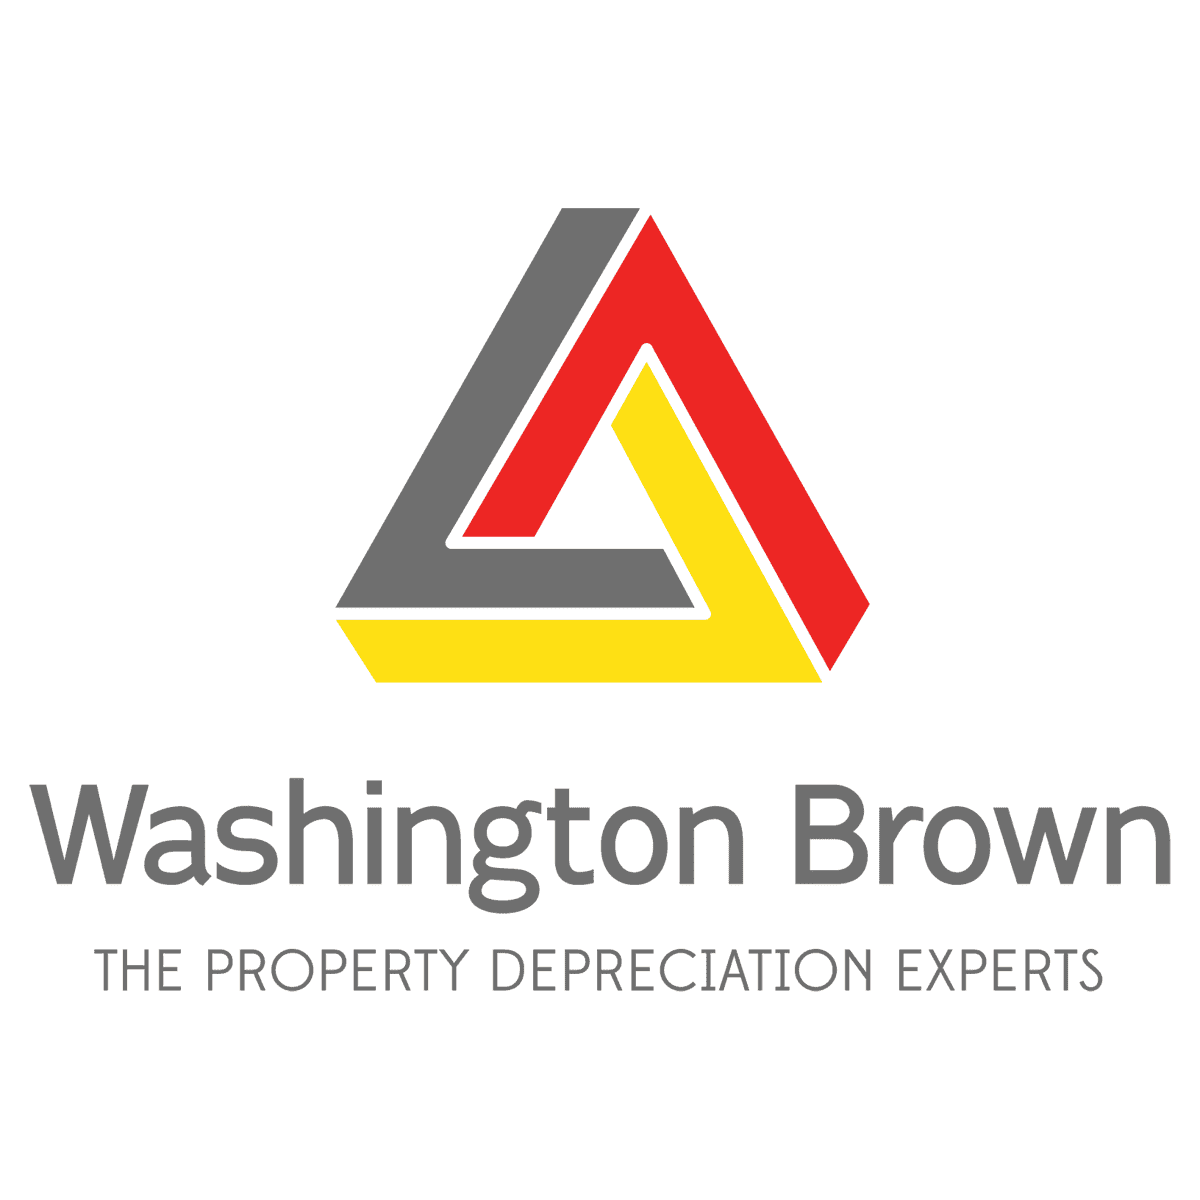 Washington Brown logo